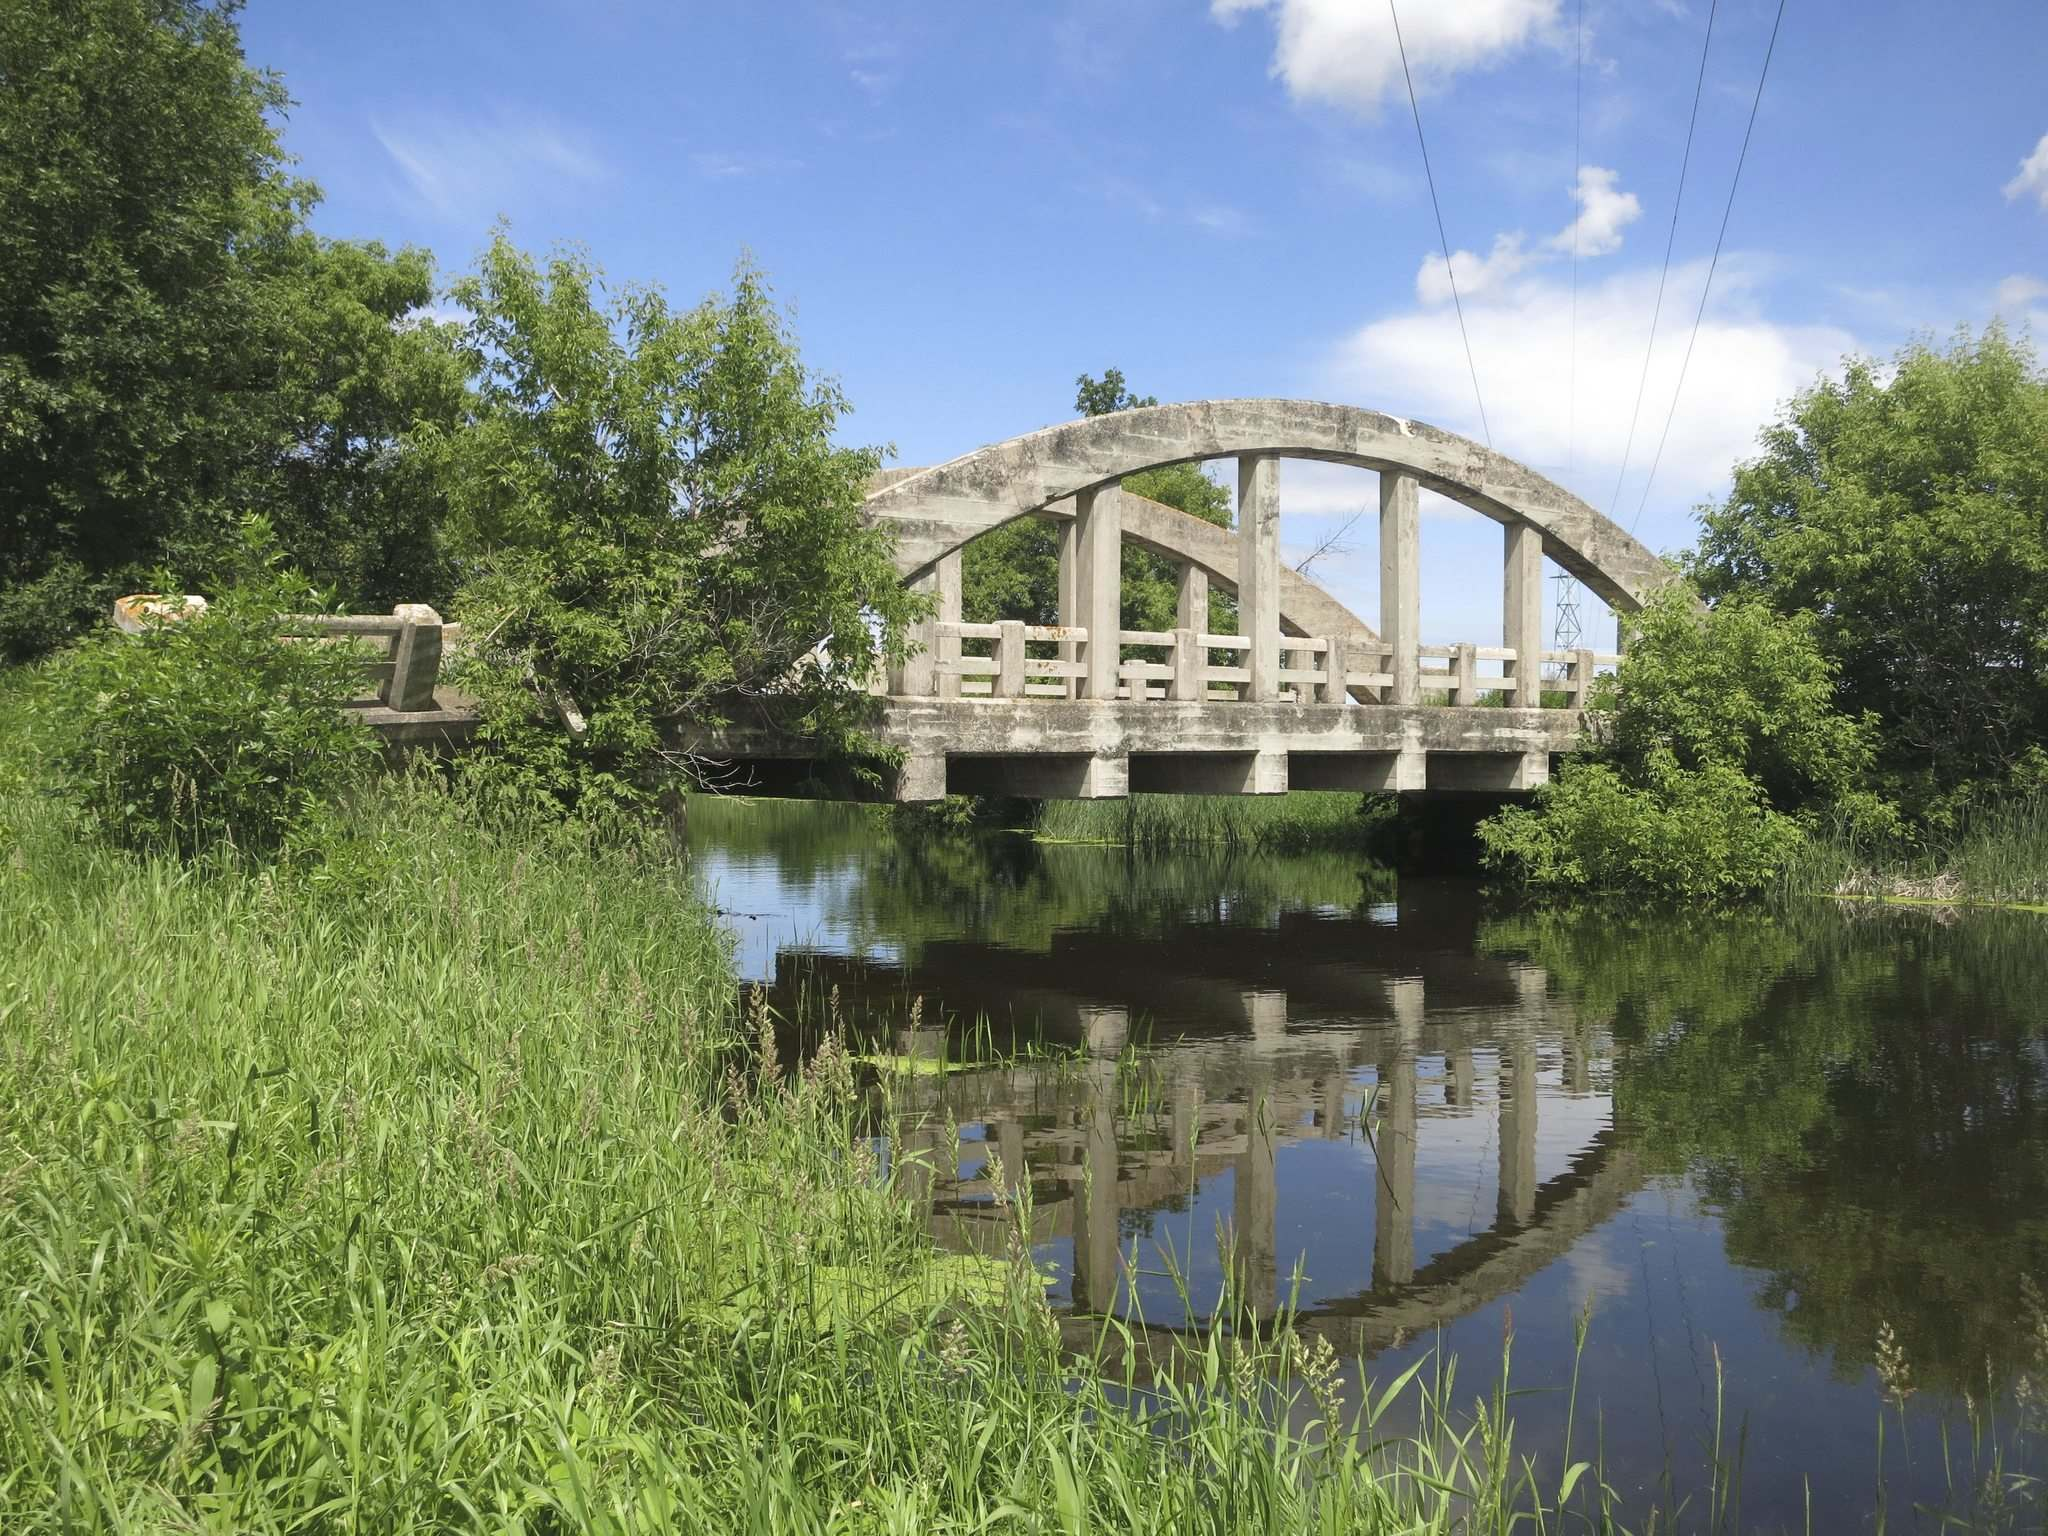 The Gervais Bowstring Bridge was constructed in 1919 at a cost of $7,000. (Gordon Goldsborough)